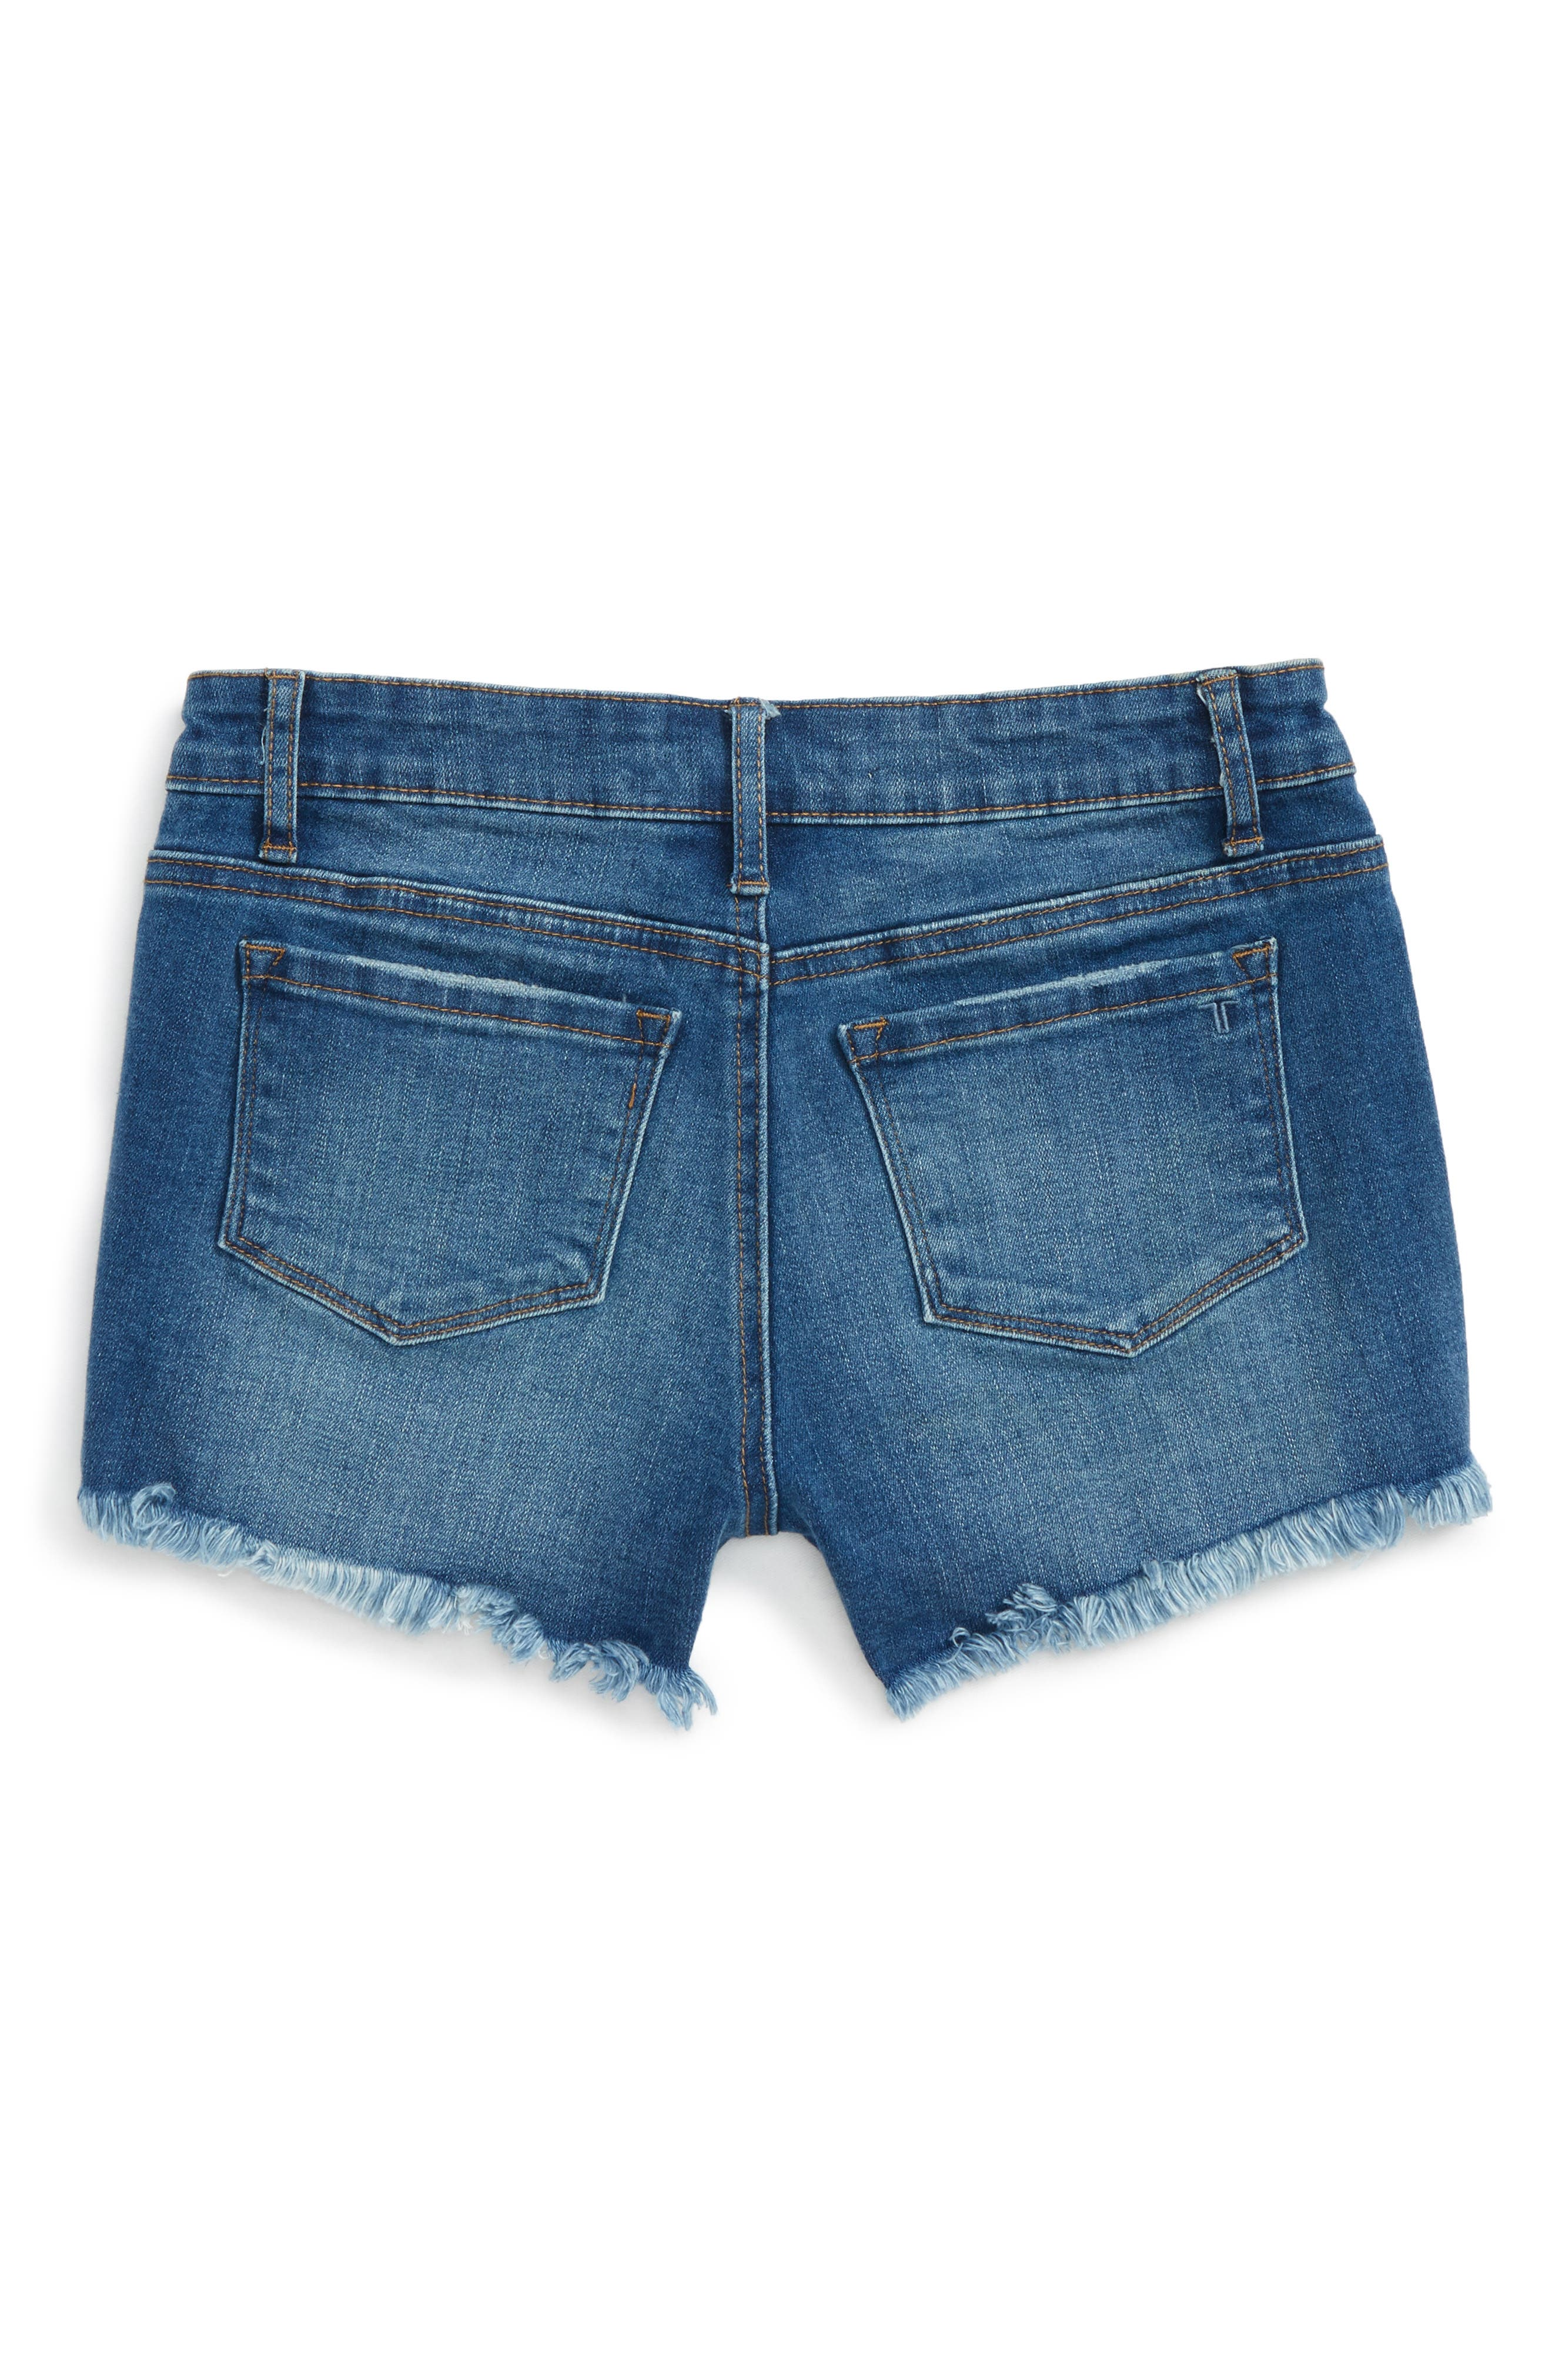 Distressed Cutoff Denim Shorts,                             Alternate thumbnail 2, color,                             Dark Indigo